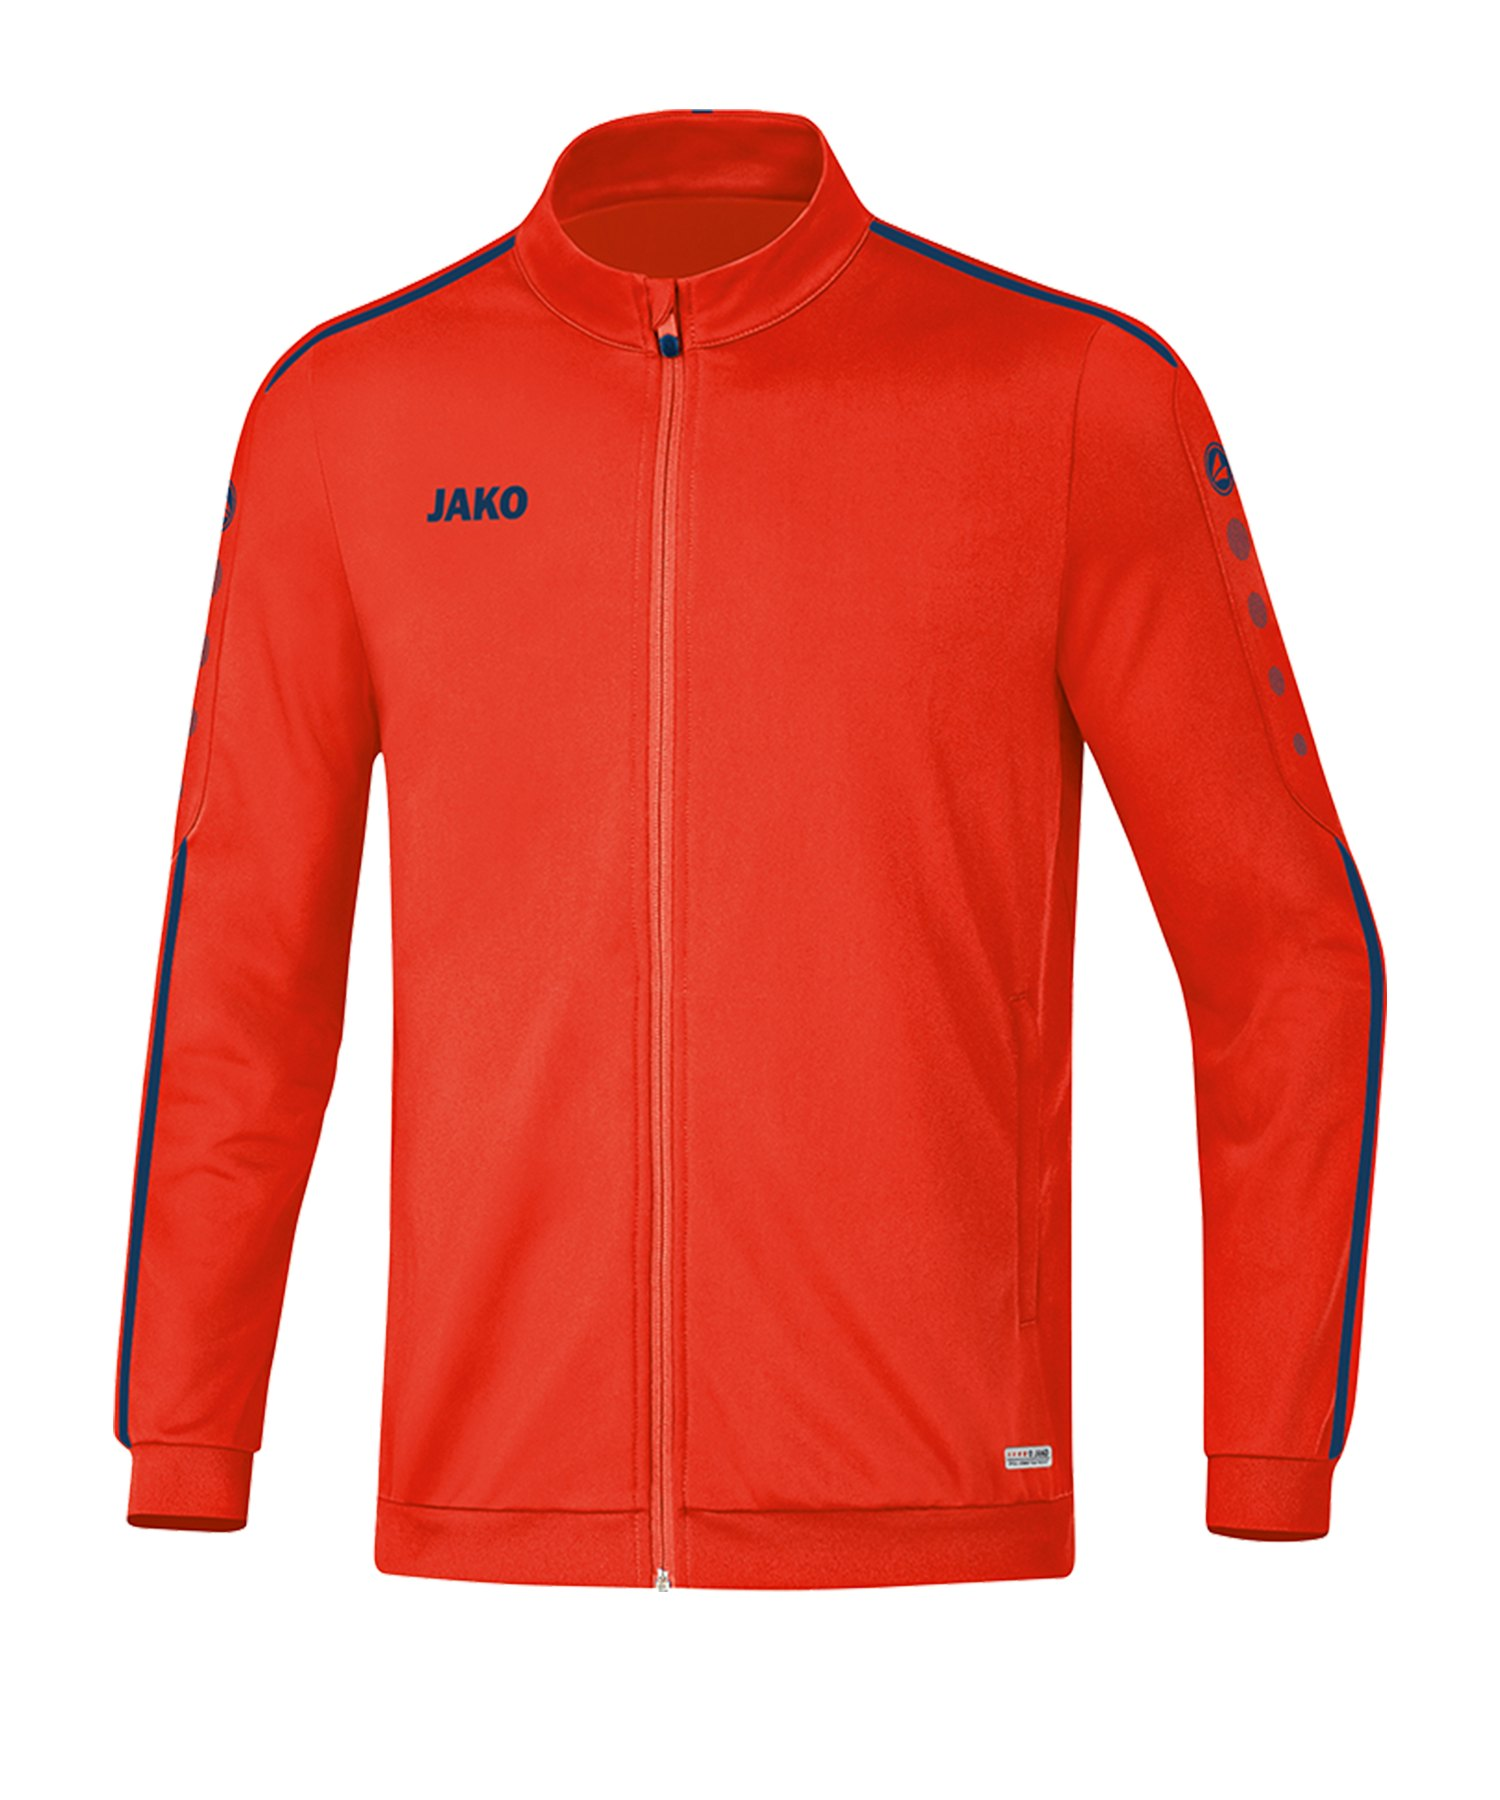 Jako Striker 2.0 Polyesterjacke Orange Blau F18 - Orange